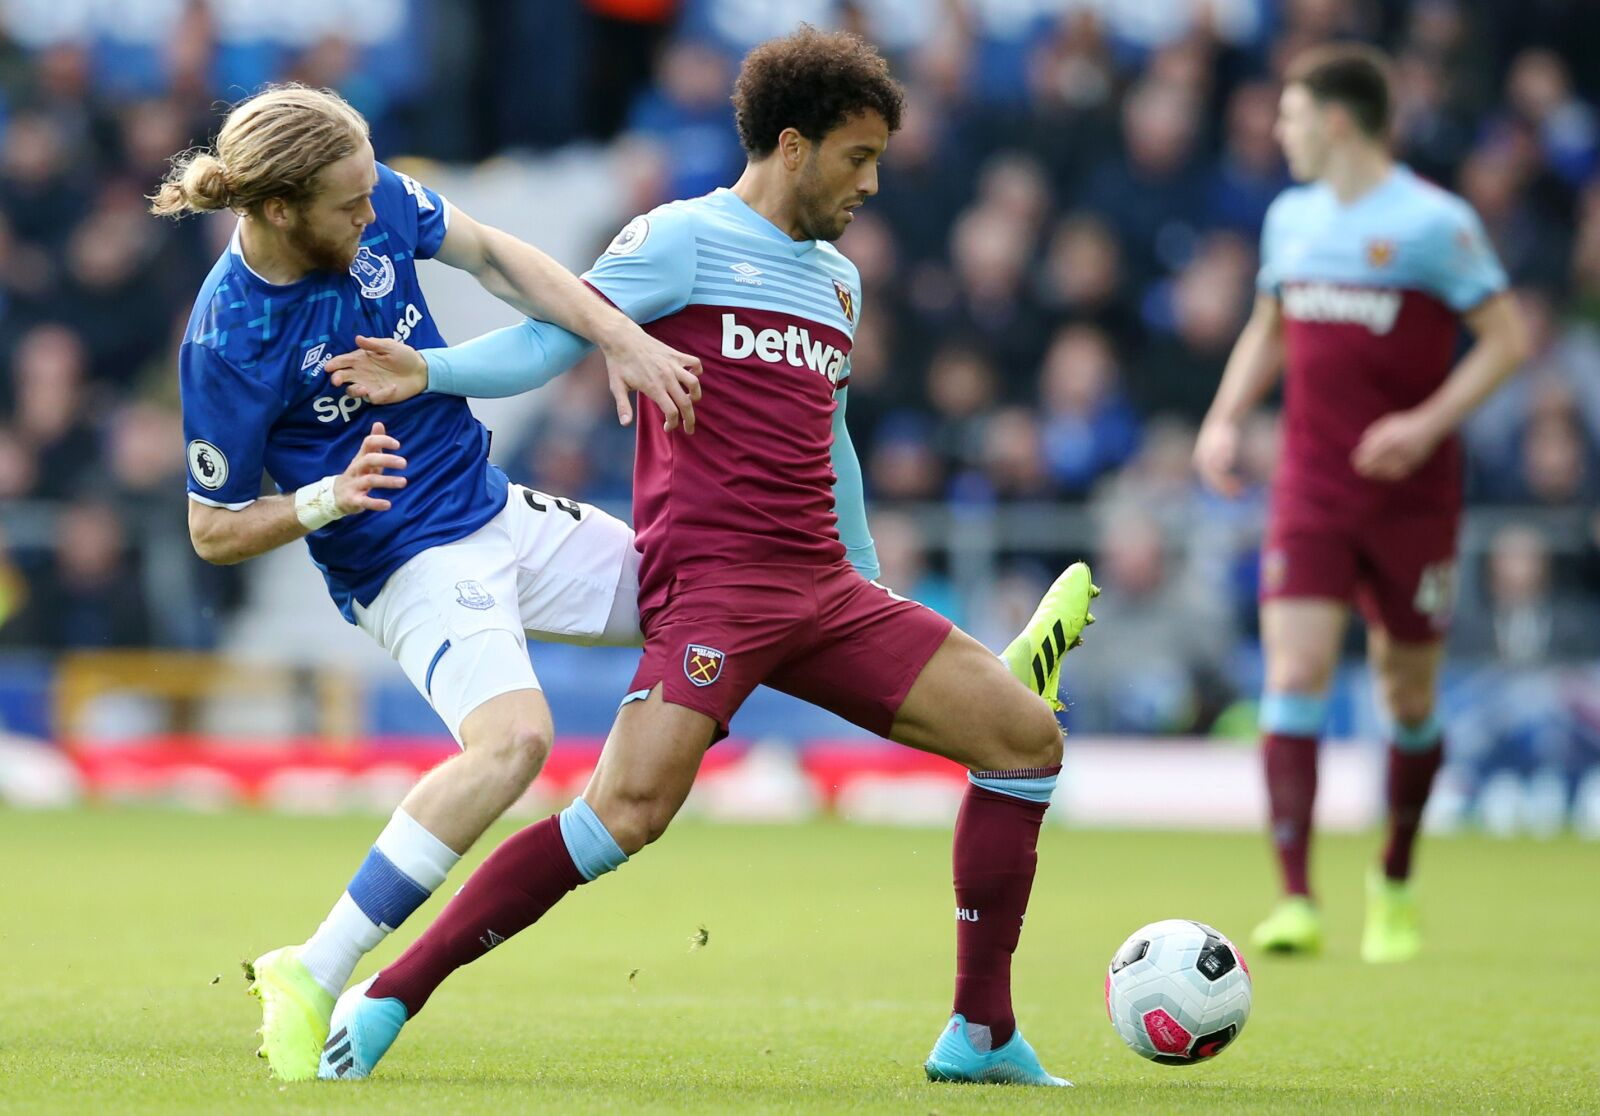 Match Review: West Ham put forward depressing effort in listless loss